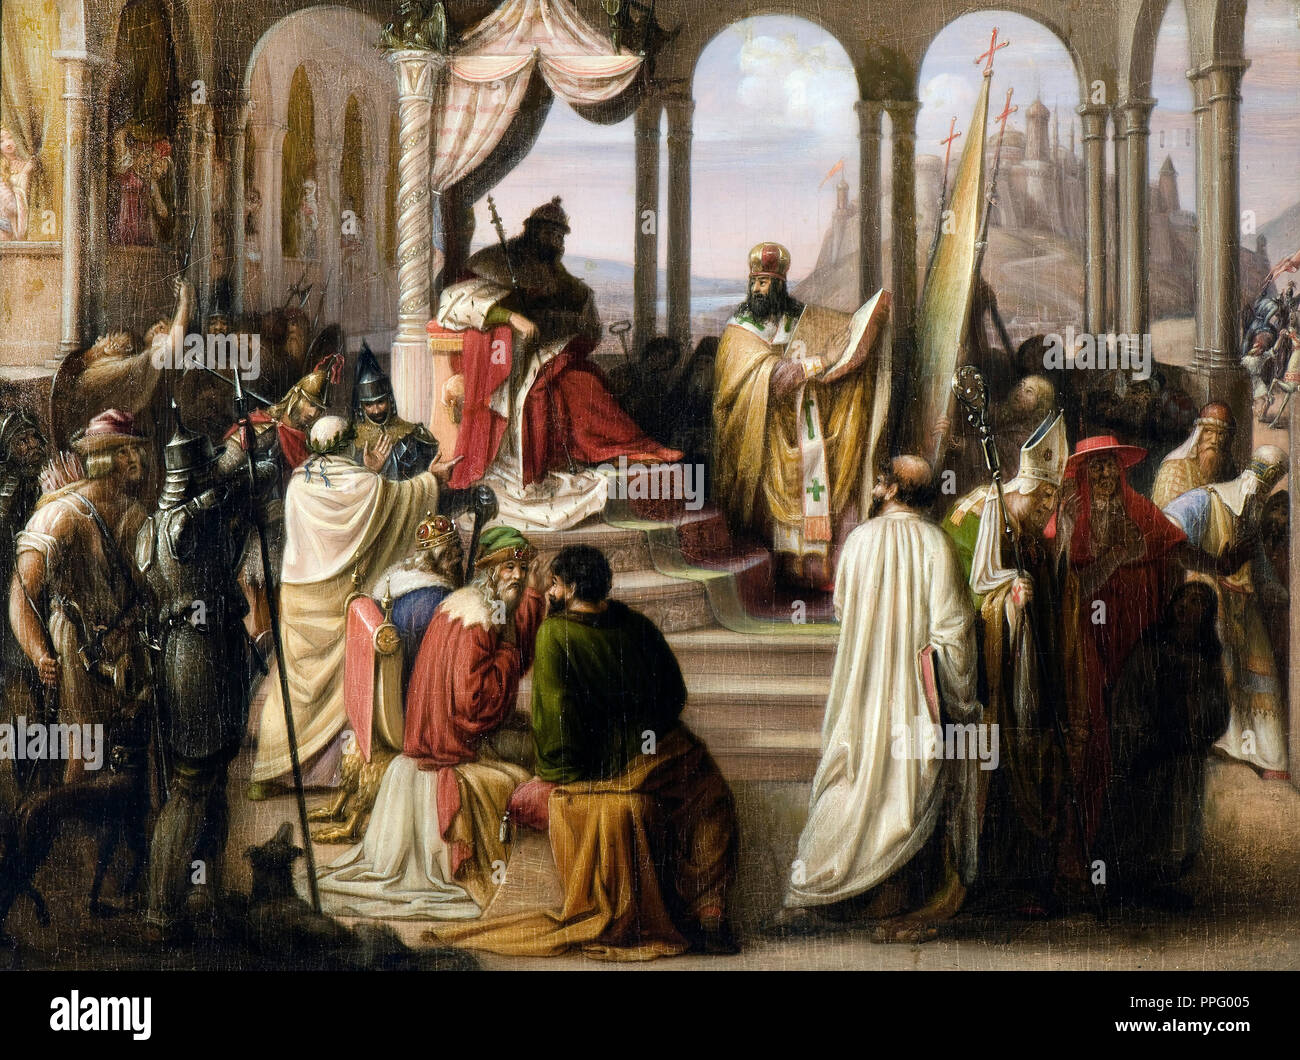 Johann Leberecht Eggink - Prince Vladimir Chooses a Religion in 988. / A Religious Dispute in the Russian court. 1822 Oil on canvas. Latvian National  - Stock Image